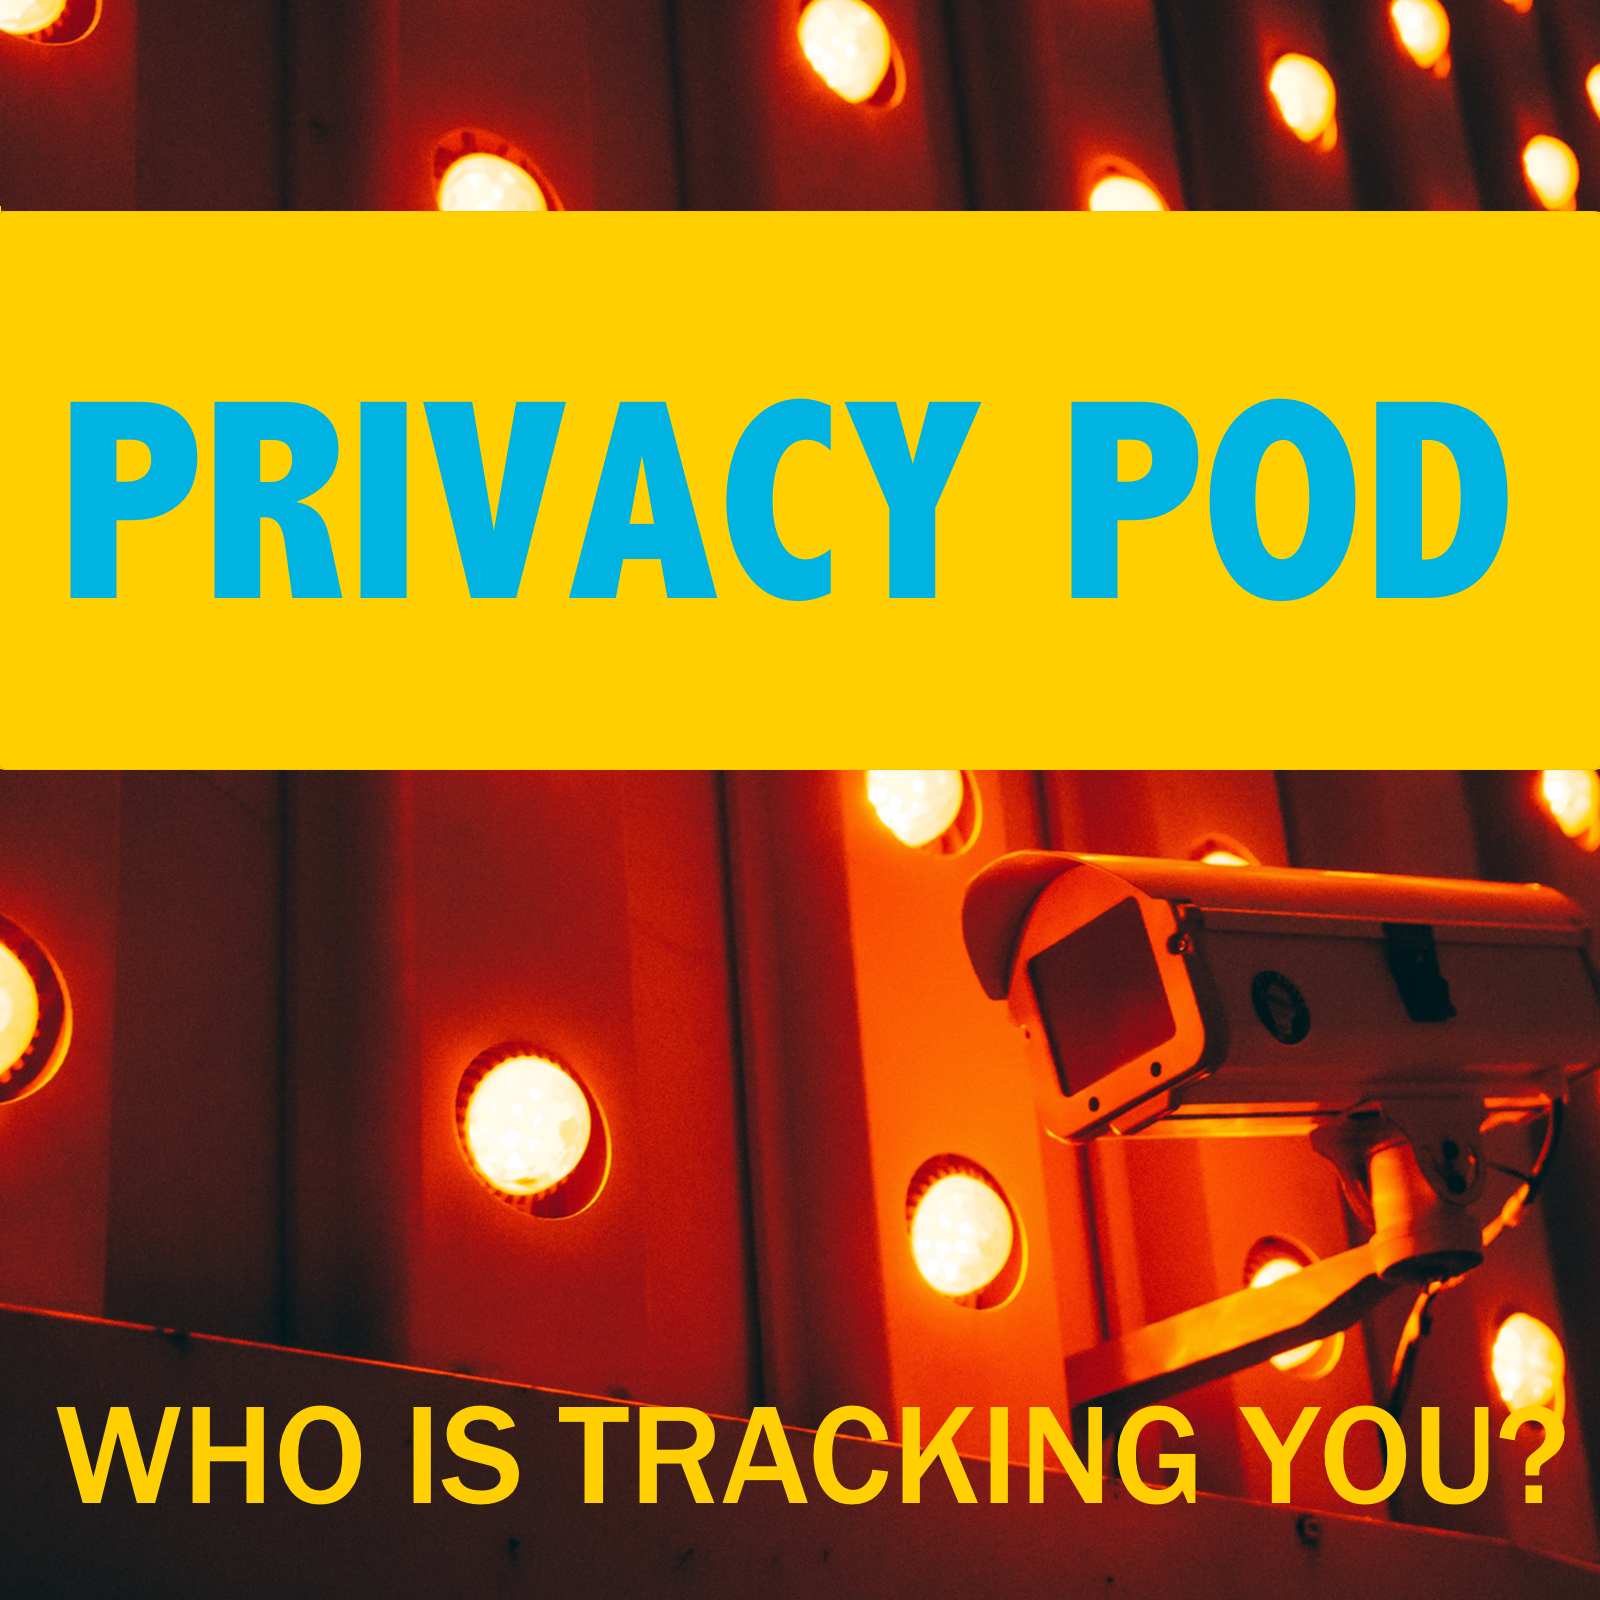 Privacy Pod - A journalist gives an interview to a popular podcaster and then disappears, leaving behind a stack of audio cassettes that tell the story of a social media conspiracy. Ten-episode serial drama based on cybercrime casesPrivacy Pod stars Emmy-award-winning voice actor Ben Diskin, GK Bowes, and Zehra Fazel. It is written, produced, and directed by Lee Schneider.Music and underscore provided by Oovra Music. Sound Design and additional music by Jeremy J. Lee.